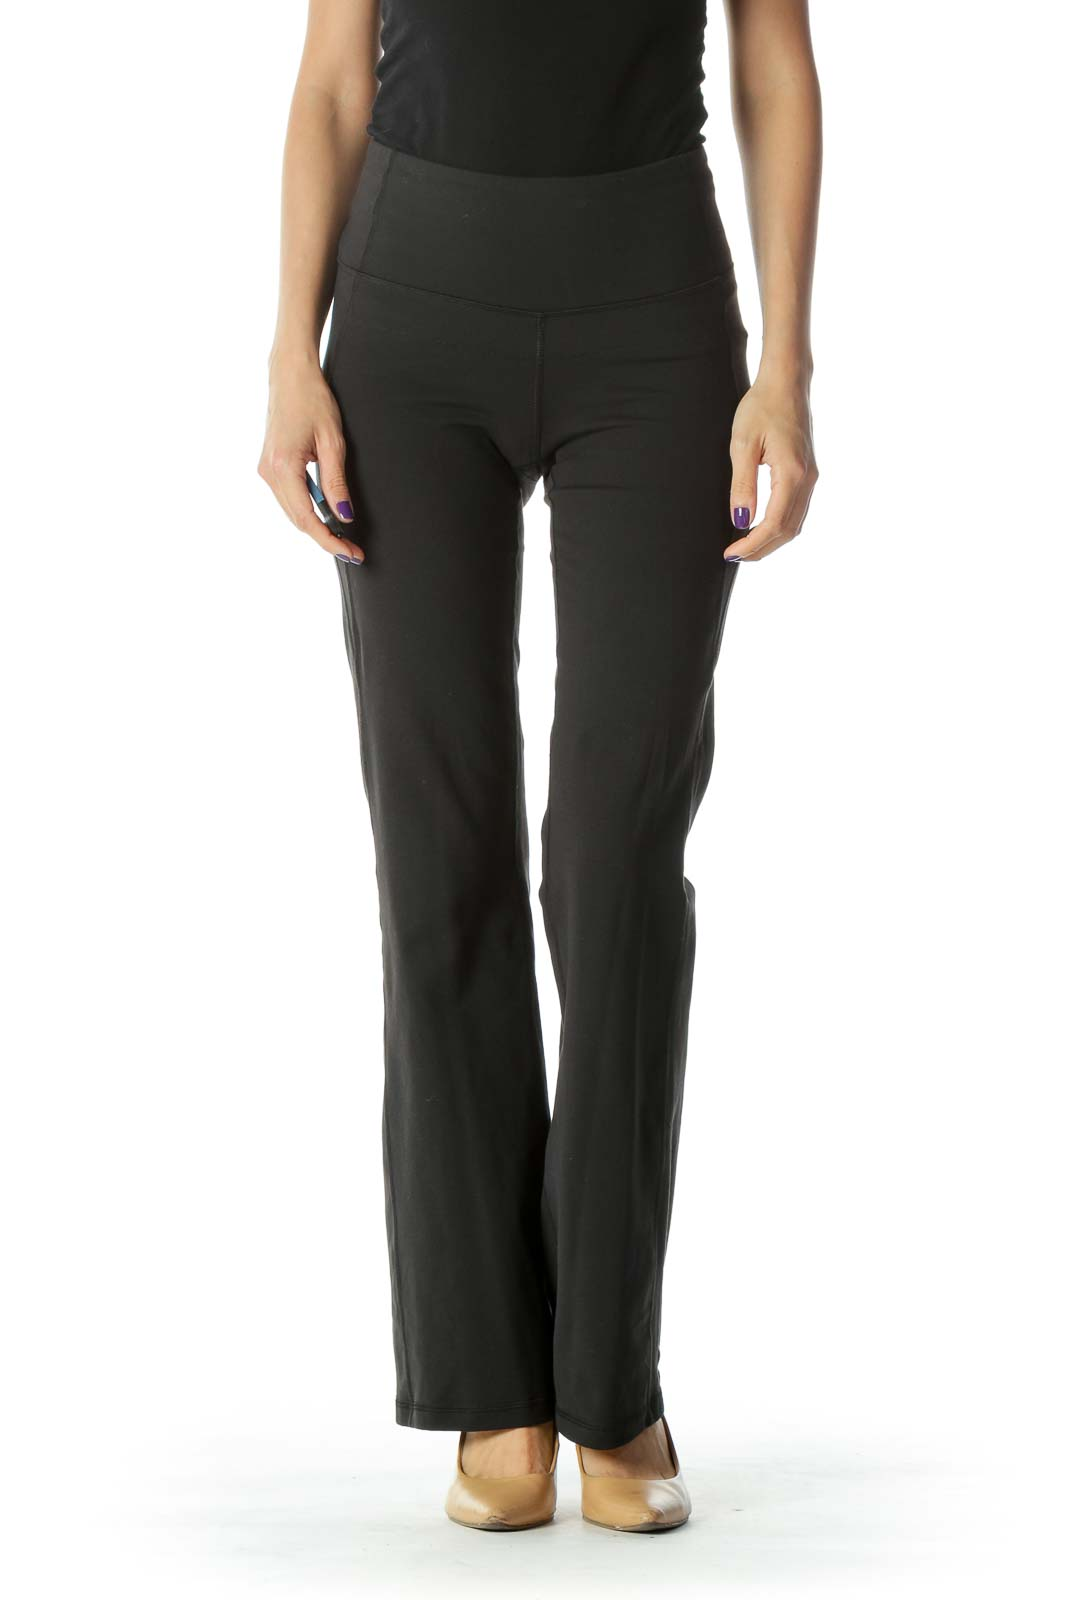 Black Stretchy Bell Bottom Yoga Pant Front